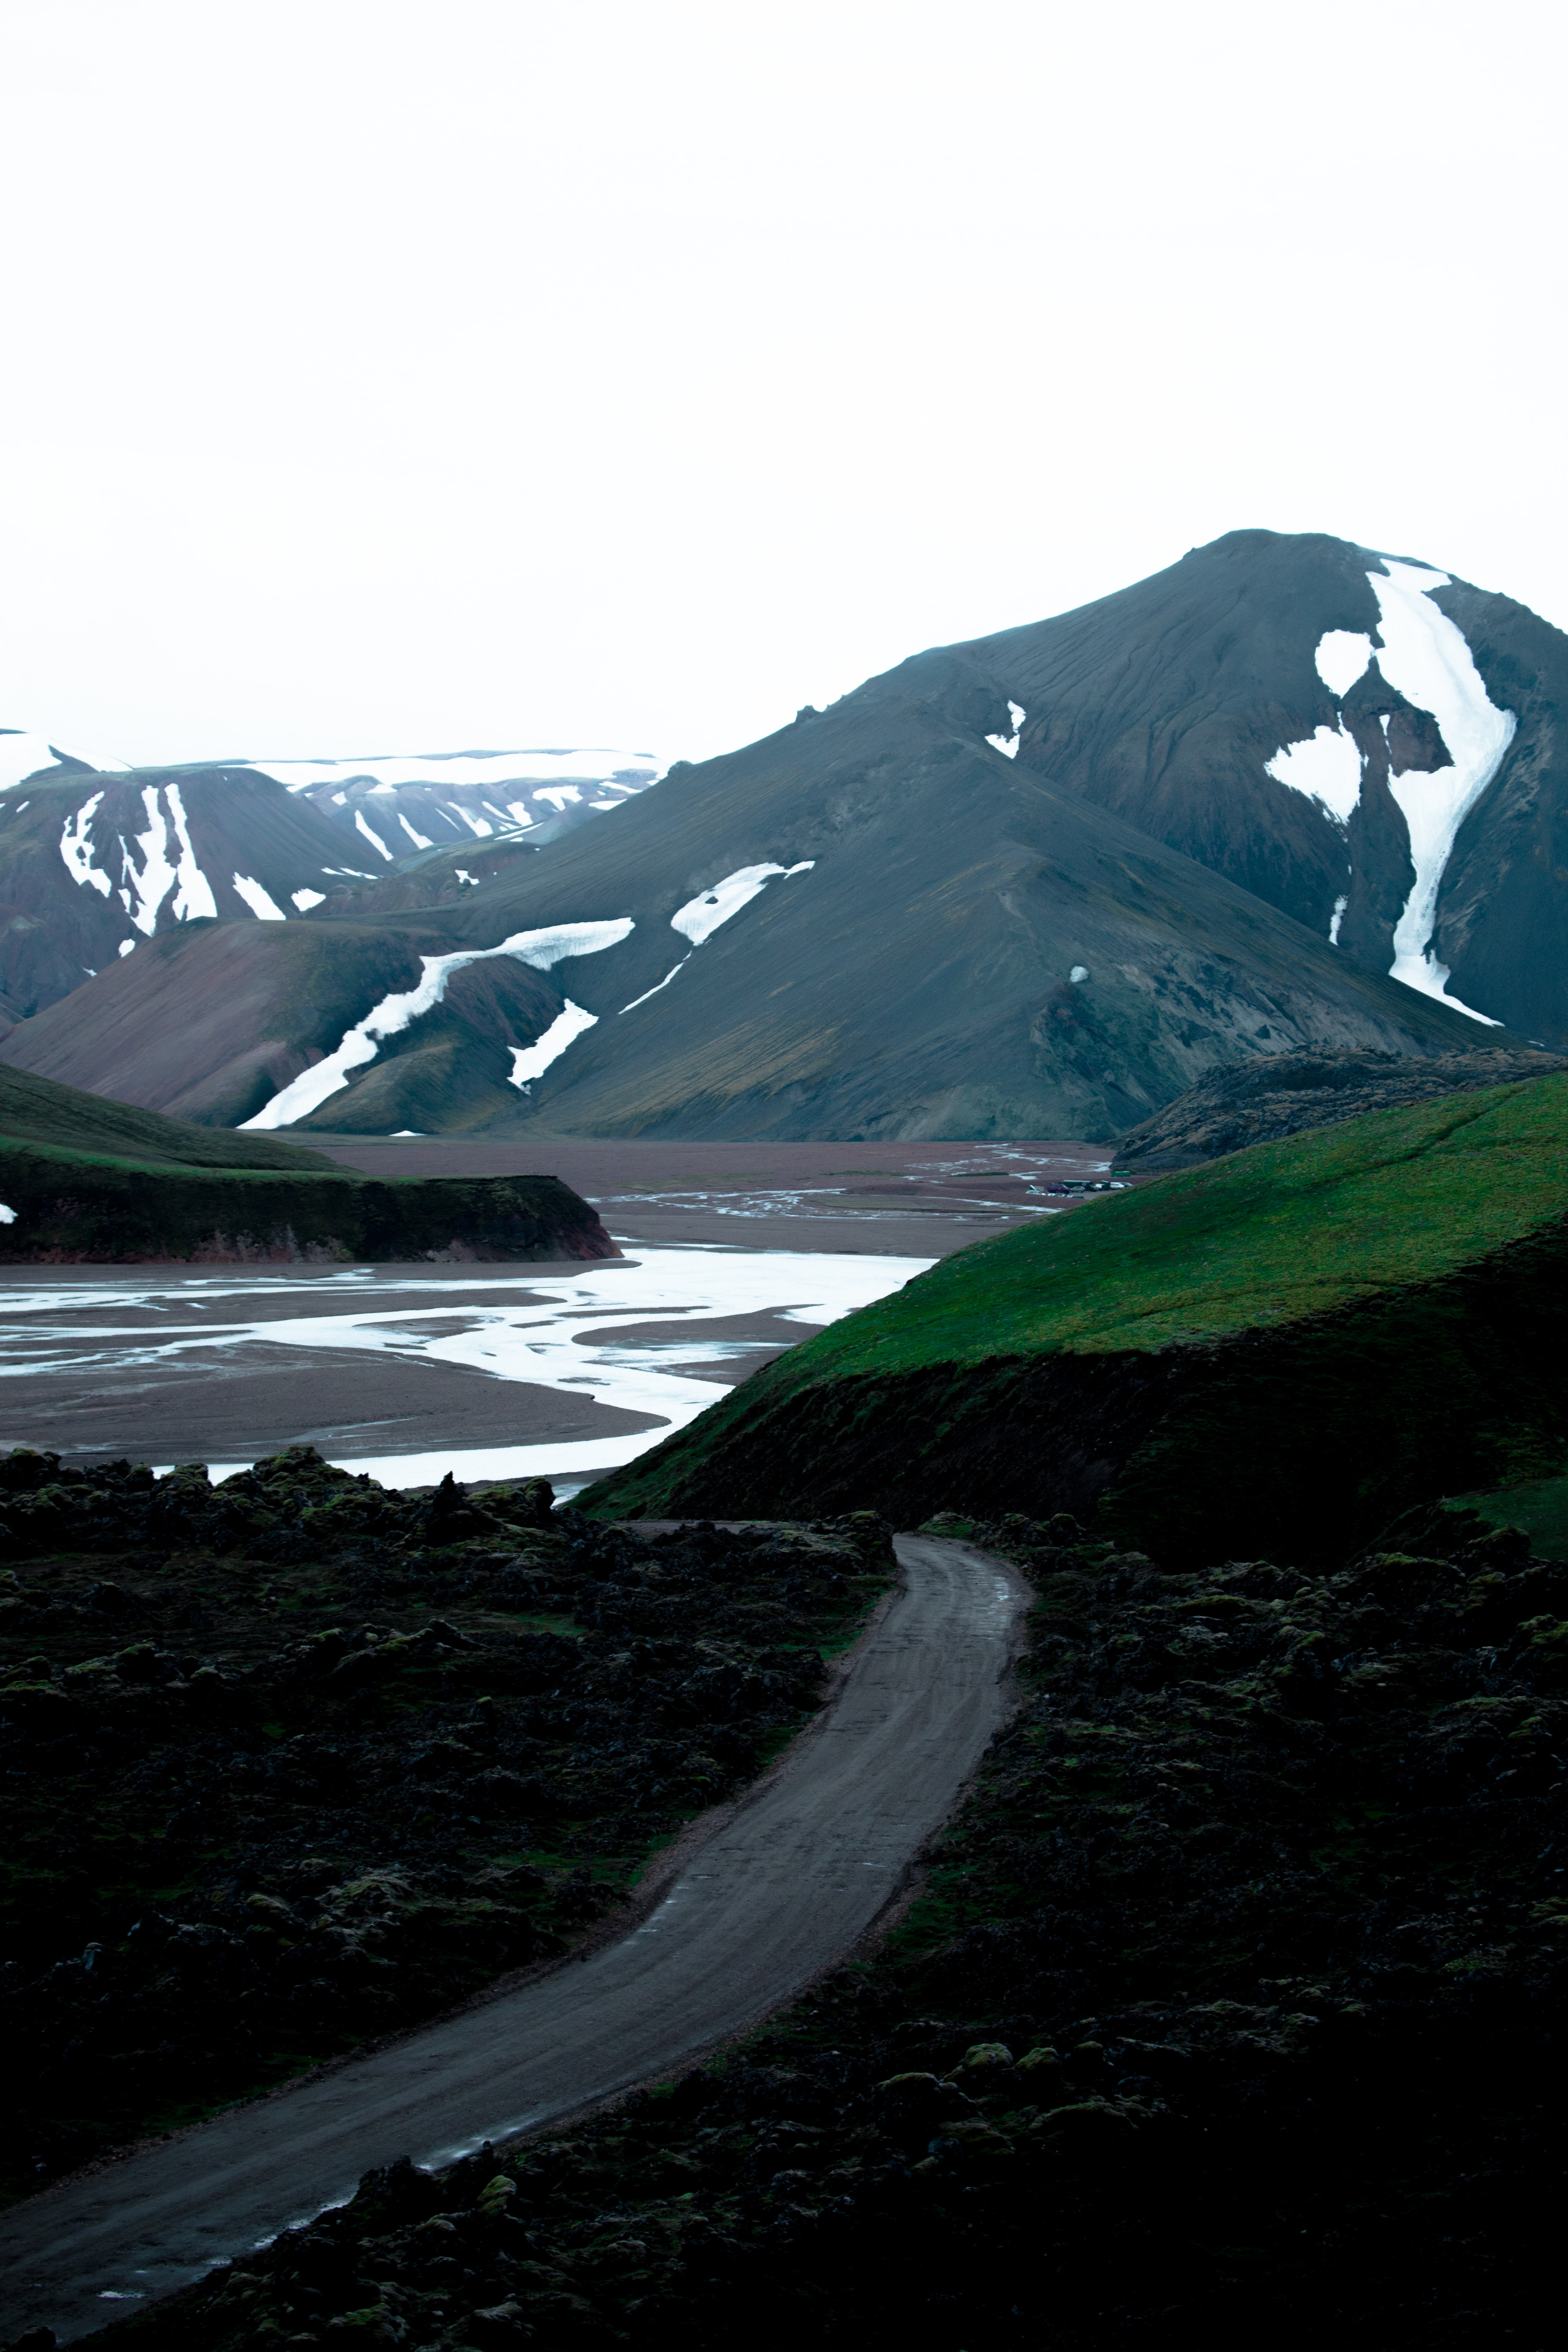 road near across mountian during daytime